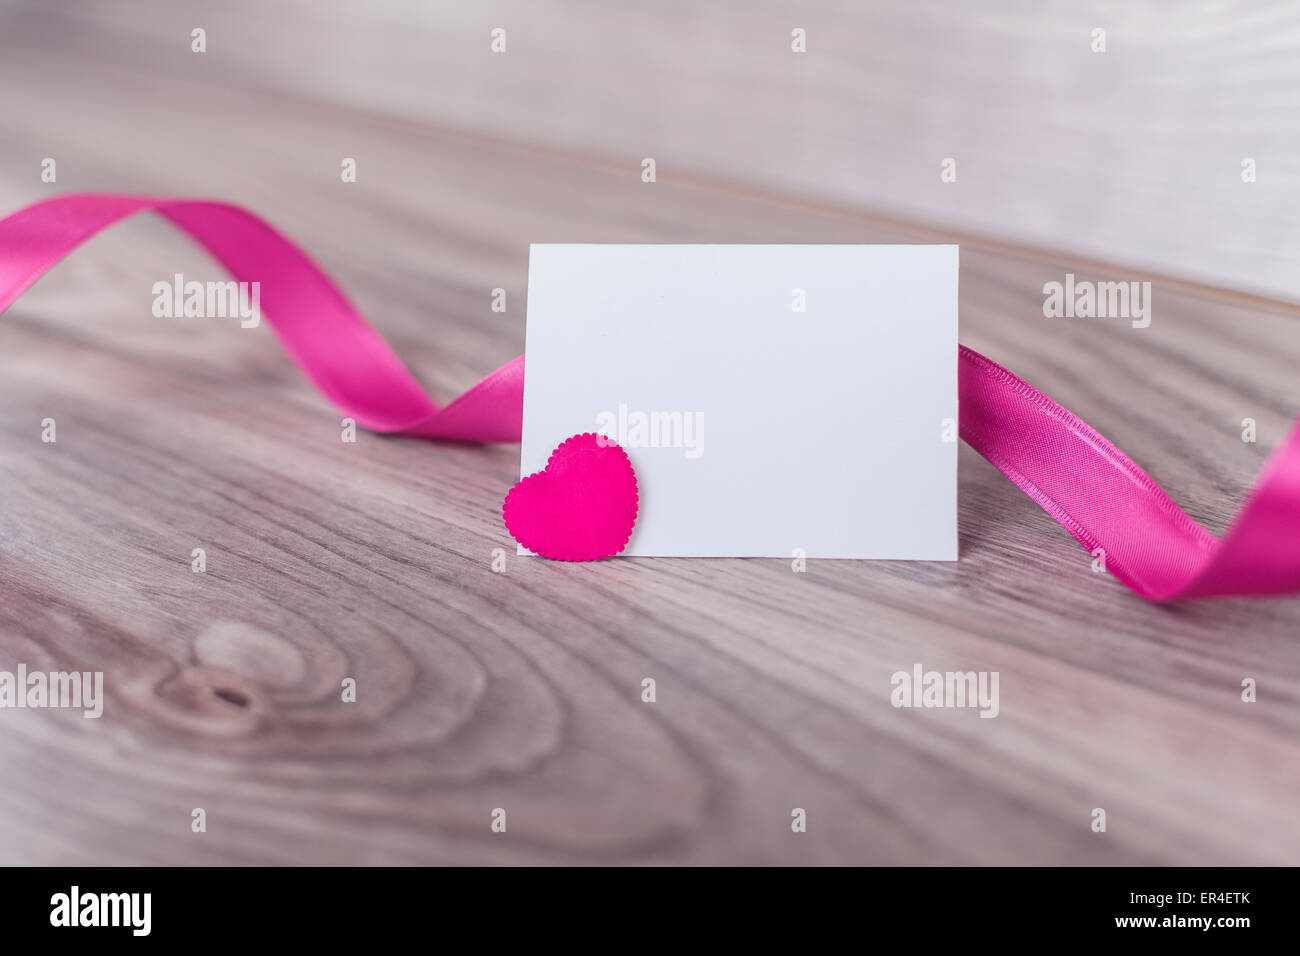 Valentines love letter on a wooden table - Stock Image